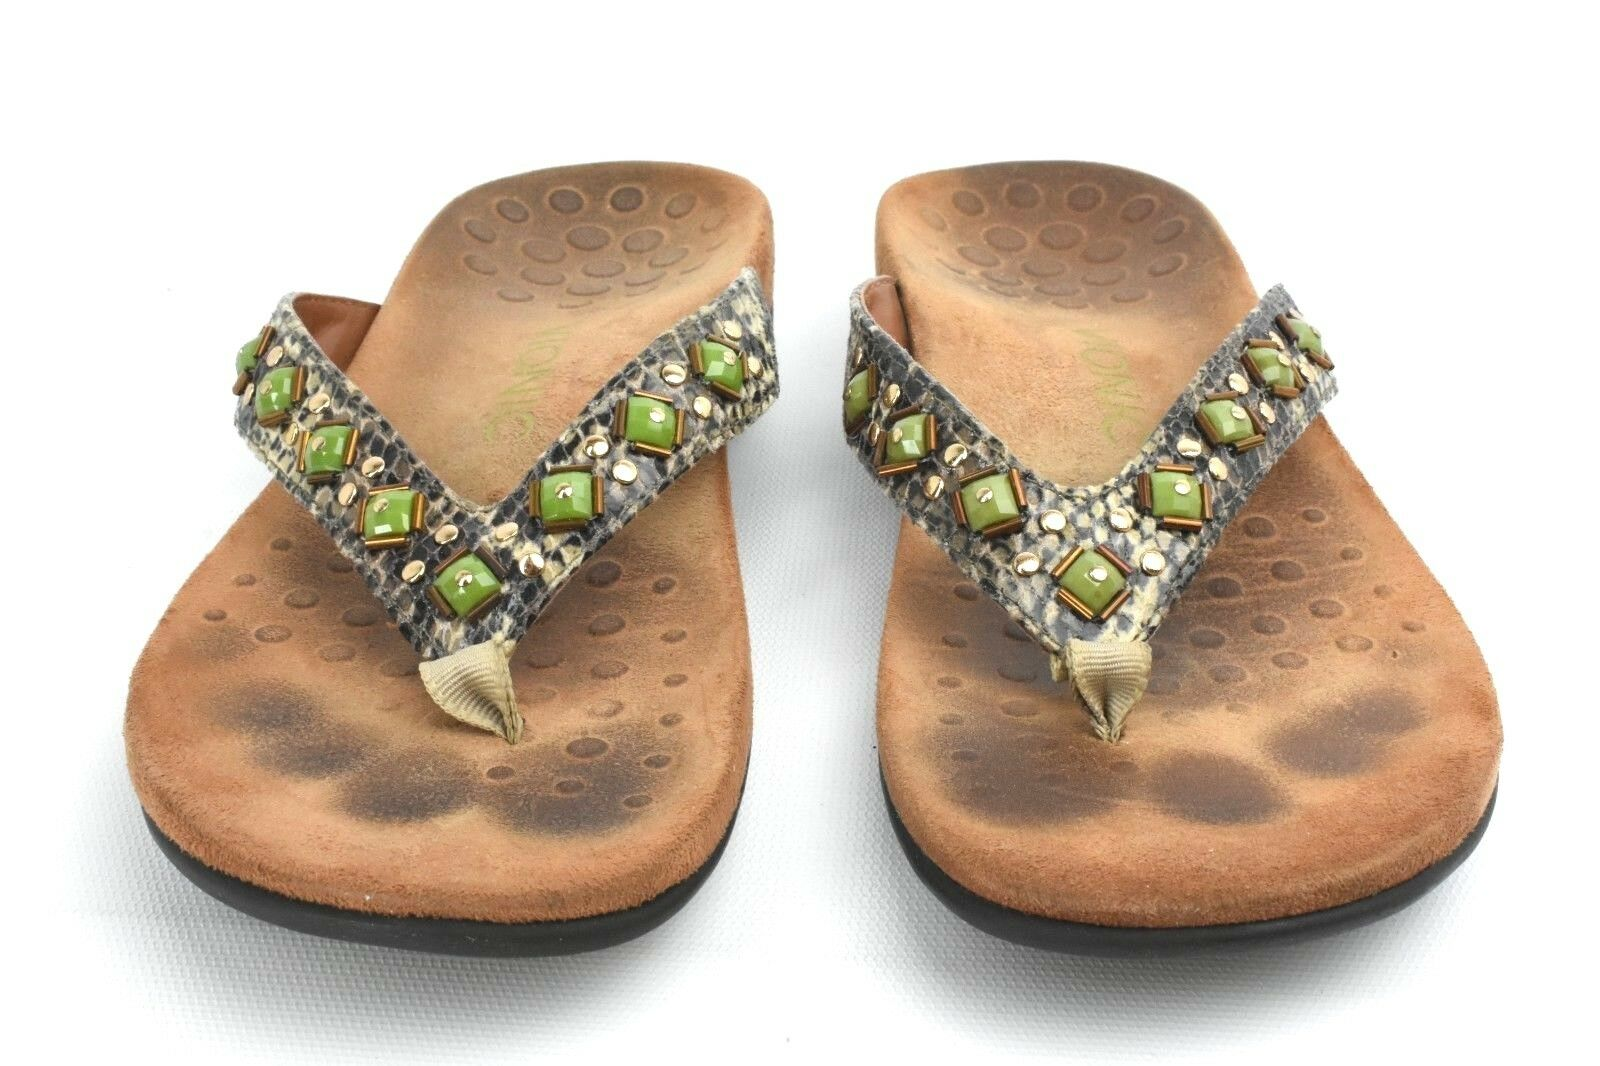 Vionic Orthaheel Embellished Thong Sandals FLORIANA NATURAL SNAKE Size 8